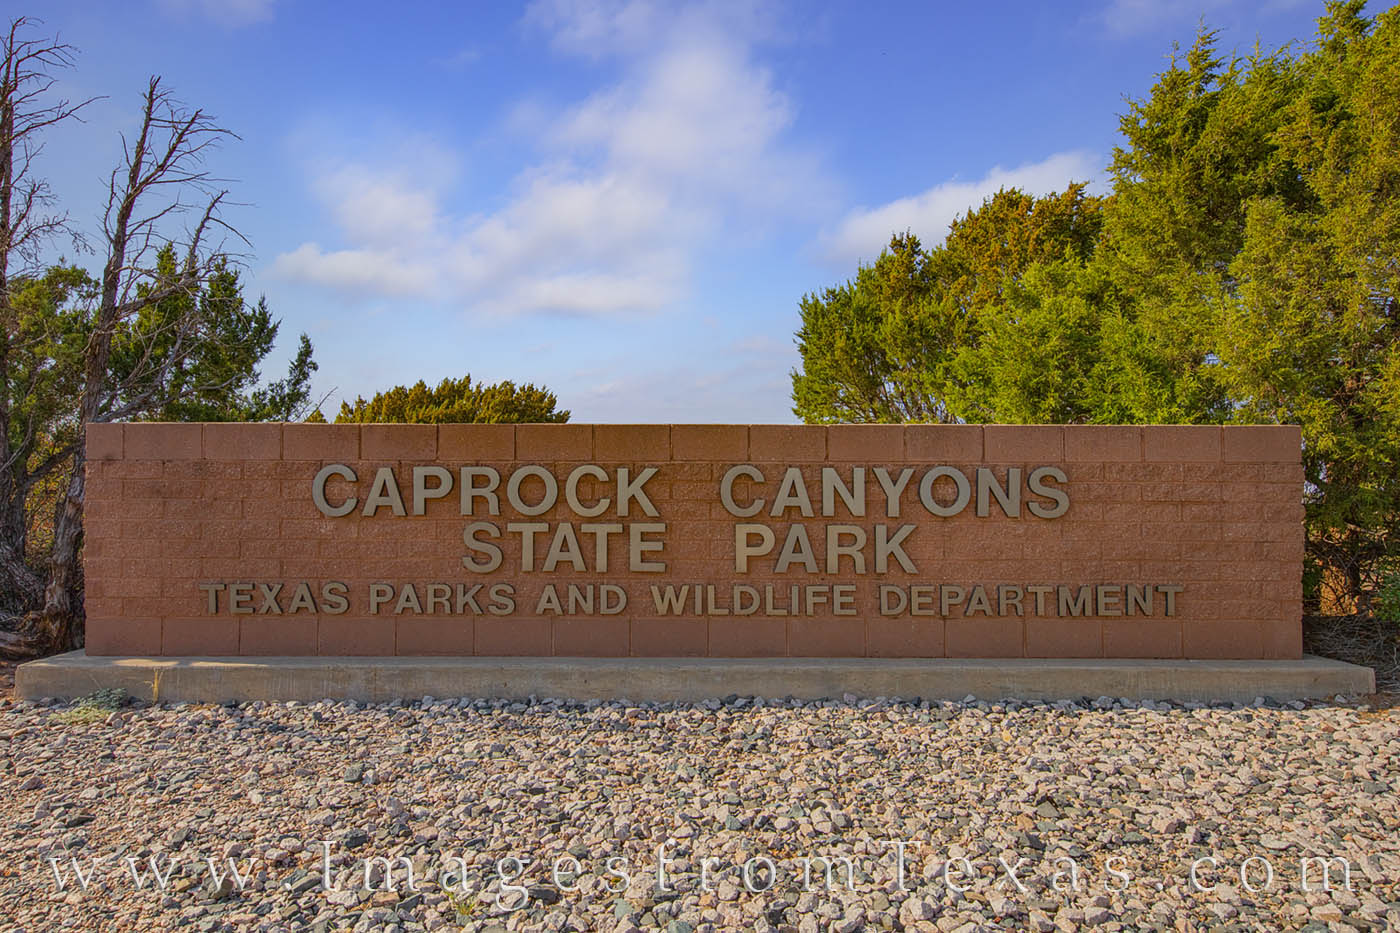 caprock canyons state park, entry sign, west texas, texas state parks, photo